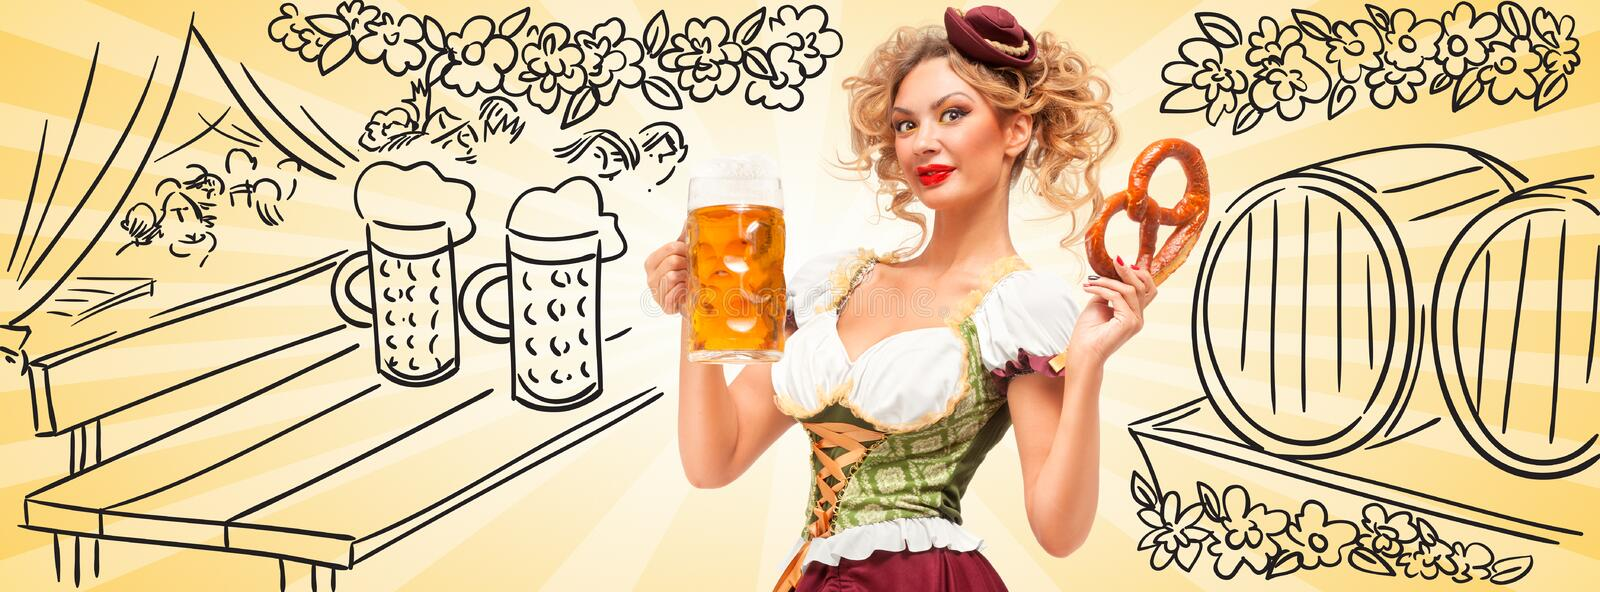 Beer tent with barrels. Beautiful Oktoberfest waitress wearing a traditional Bavarian dress dirndl holding a pretzel and beer mug, and smiling happily on royalty free stock photo